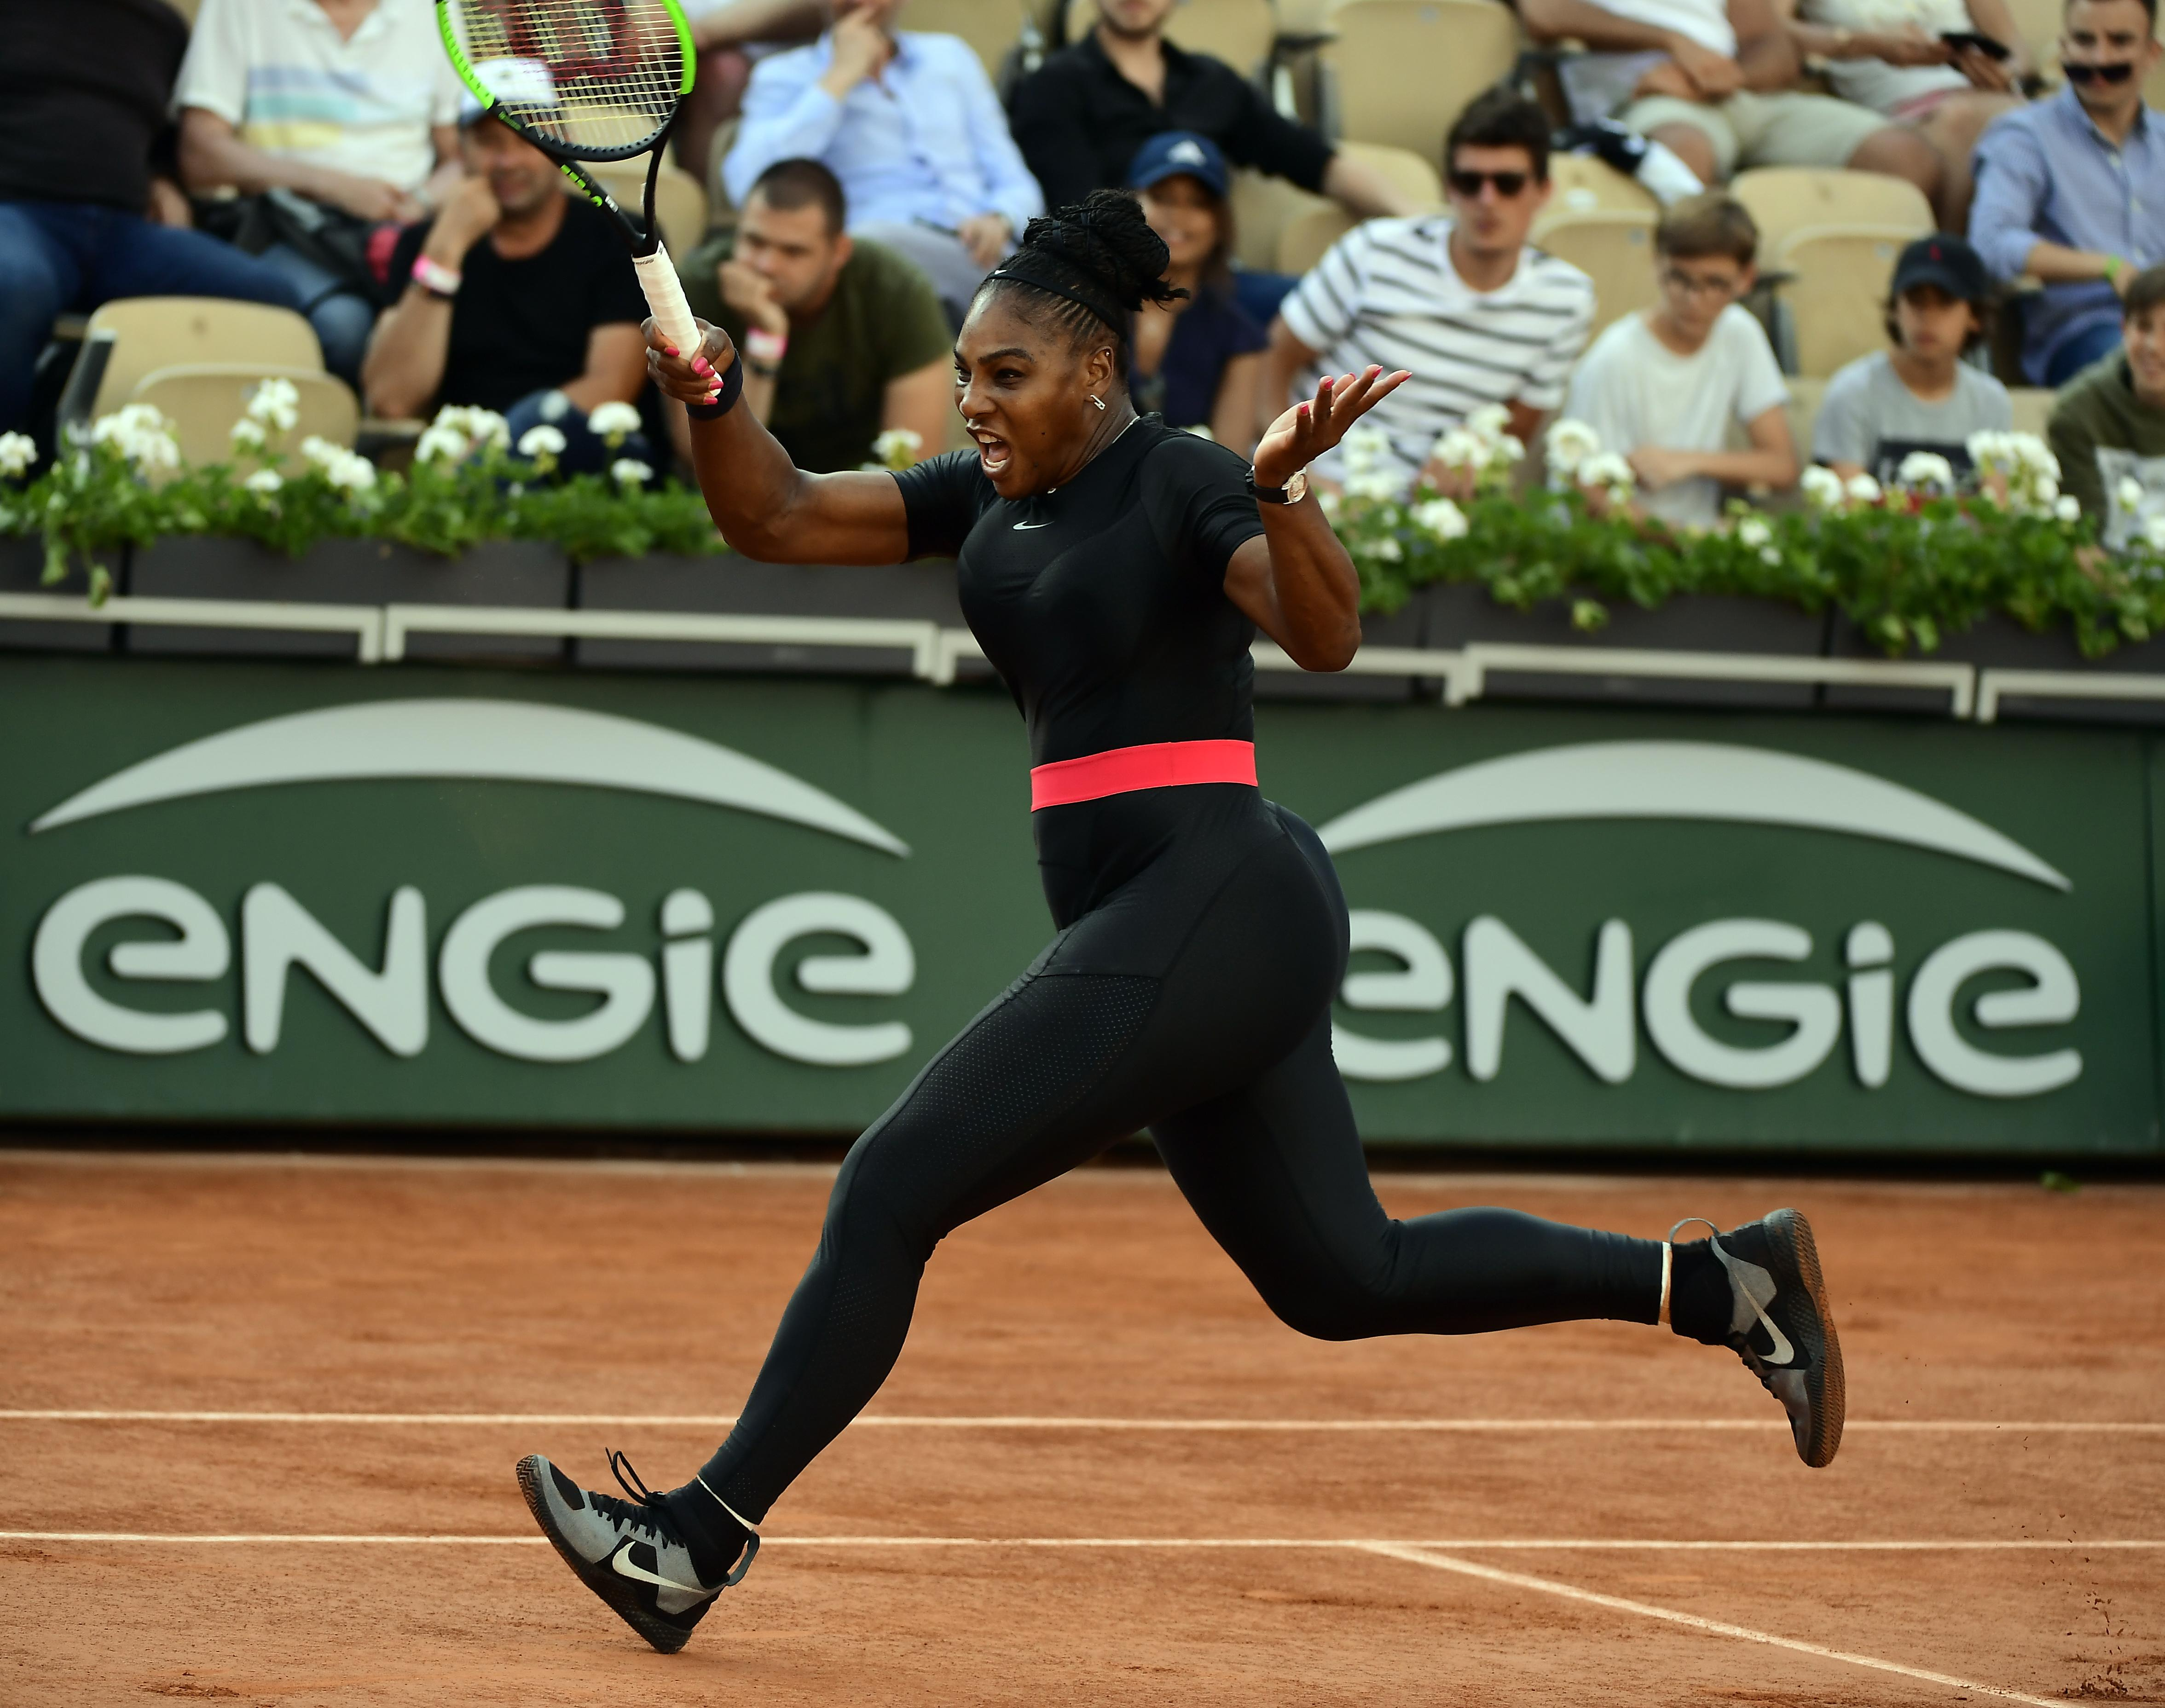 Serena has won 19 of her 21 matches against the Russian